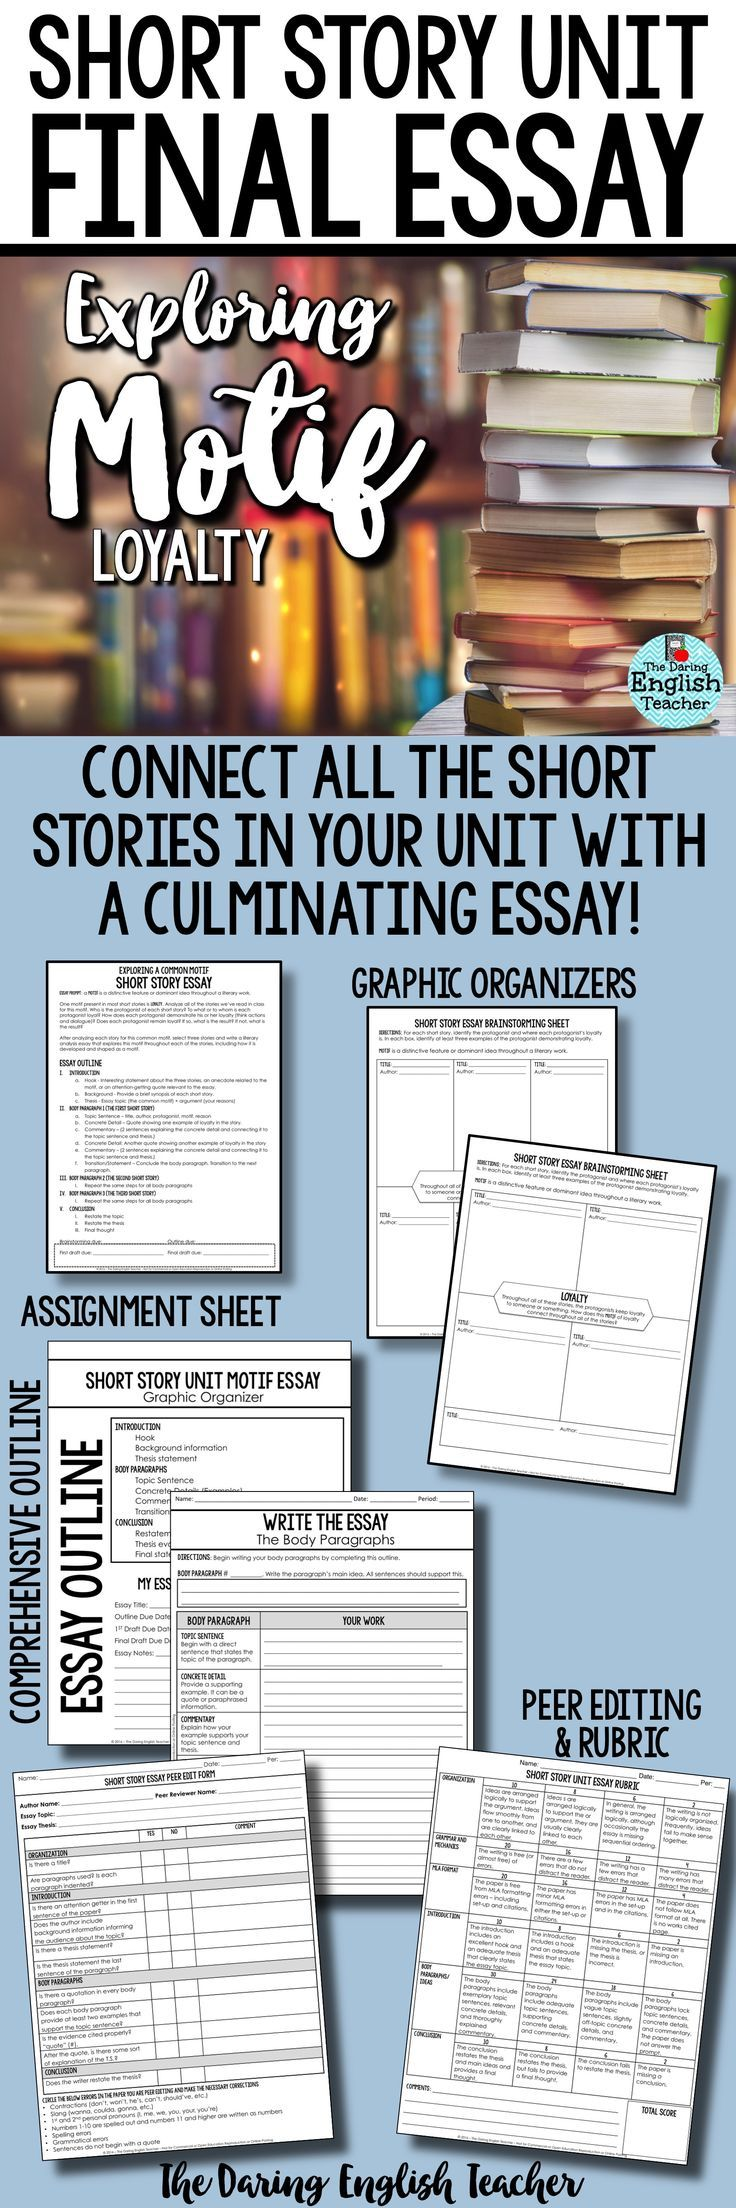 top 25 ideas about short stories for high school students on short story unit final essay analyzing motif loyalty